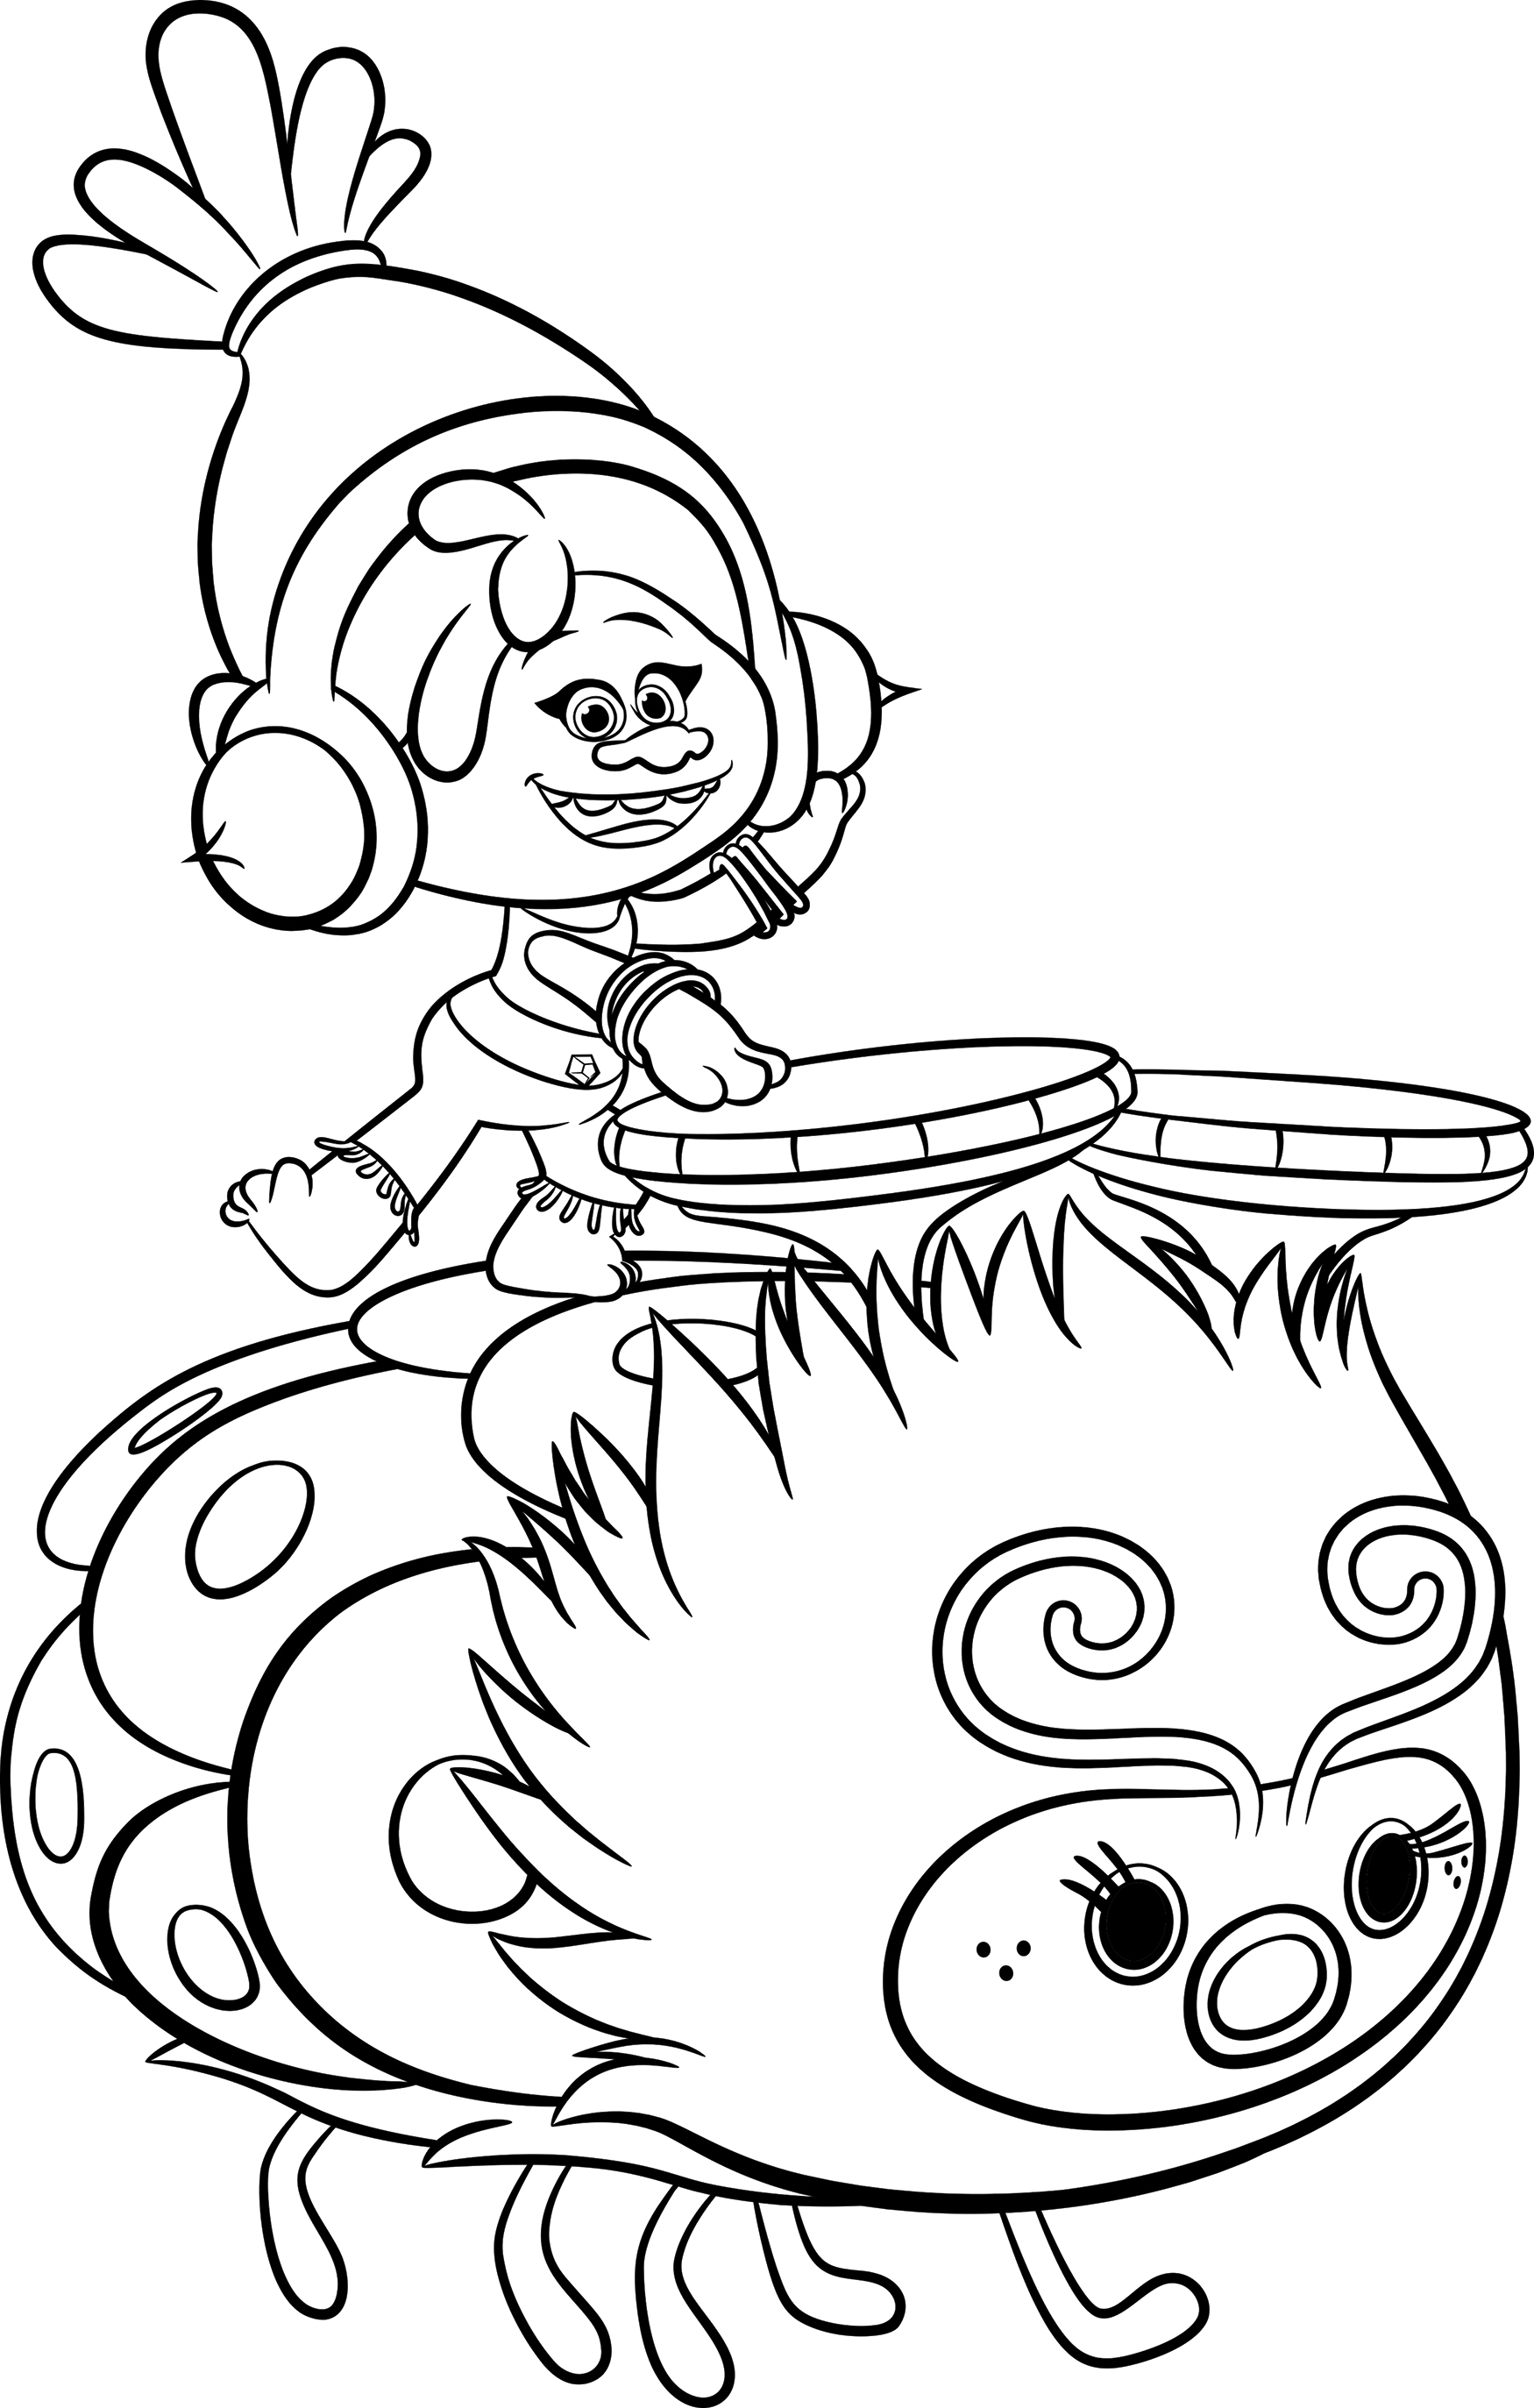 cloud coloring page - trolls digital hd free activity sheets